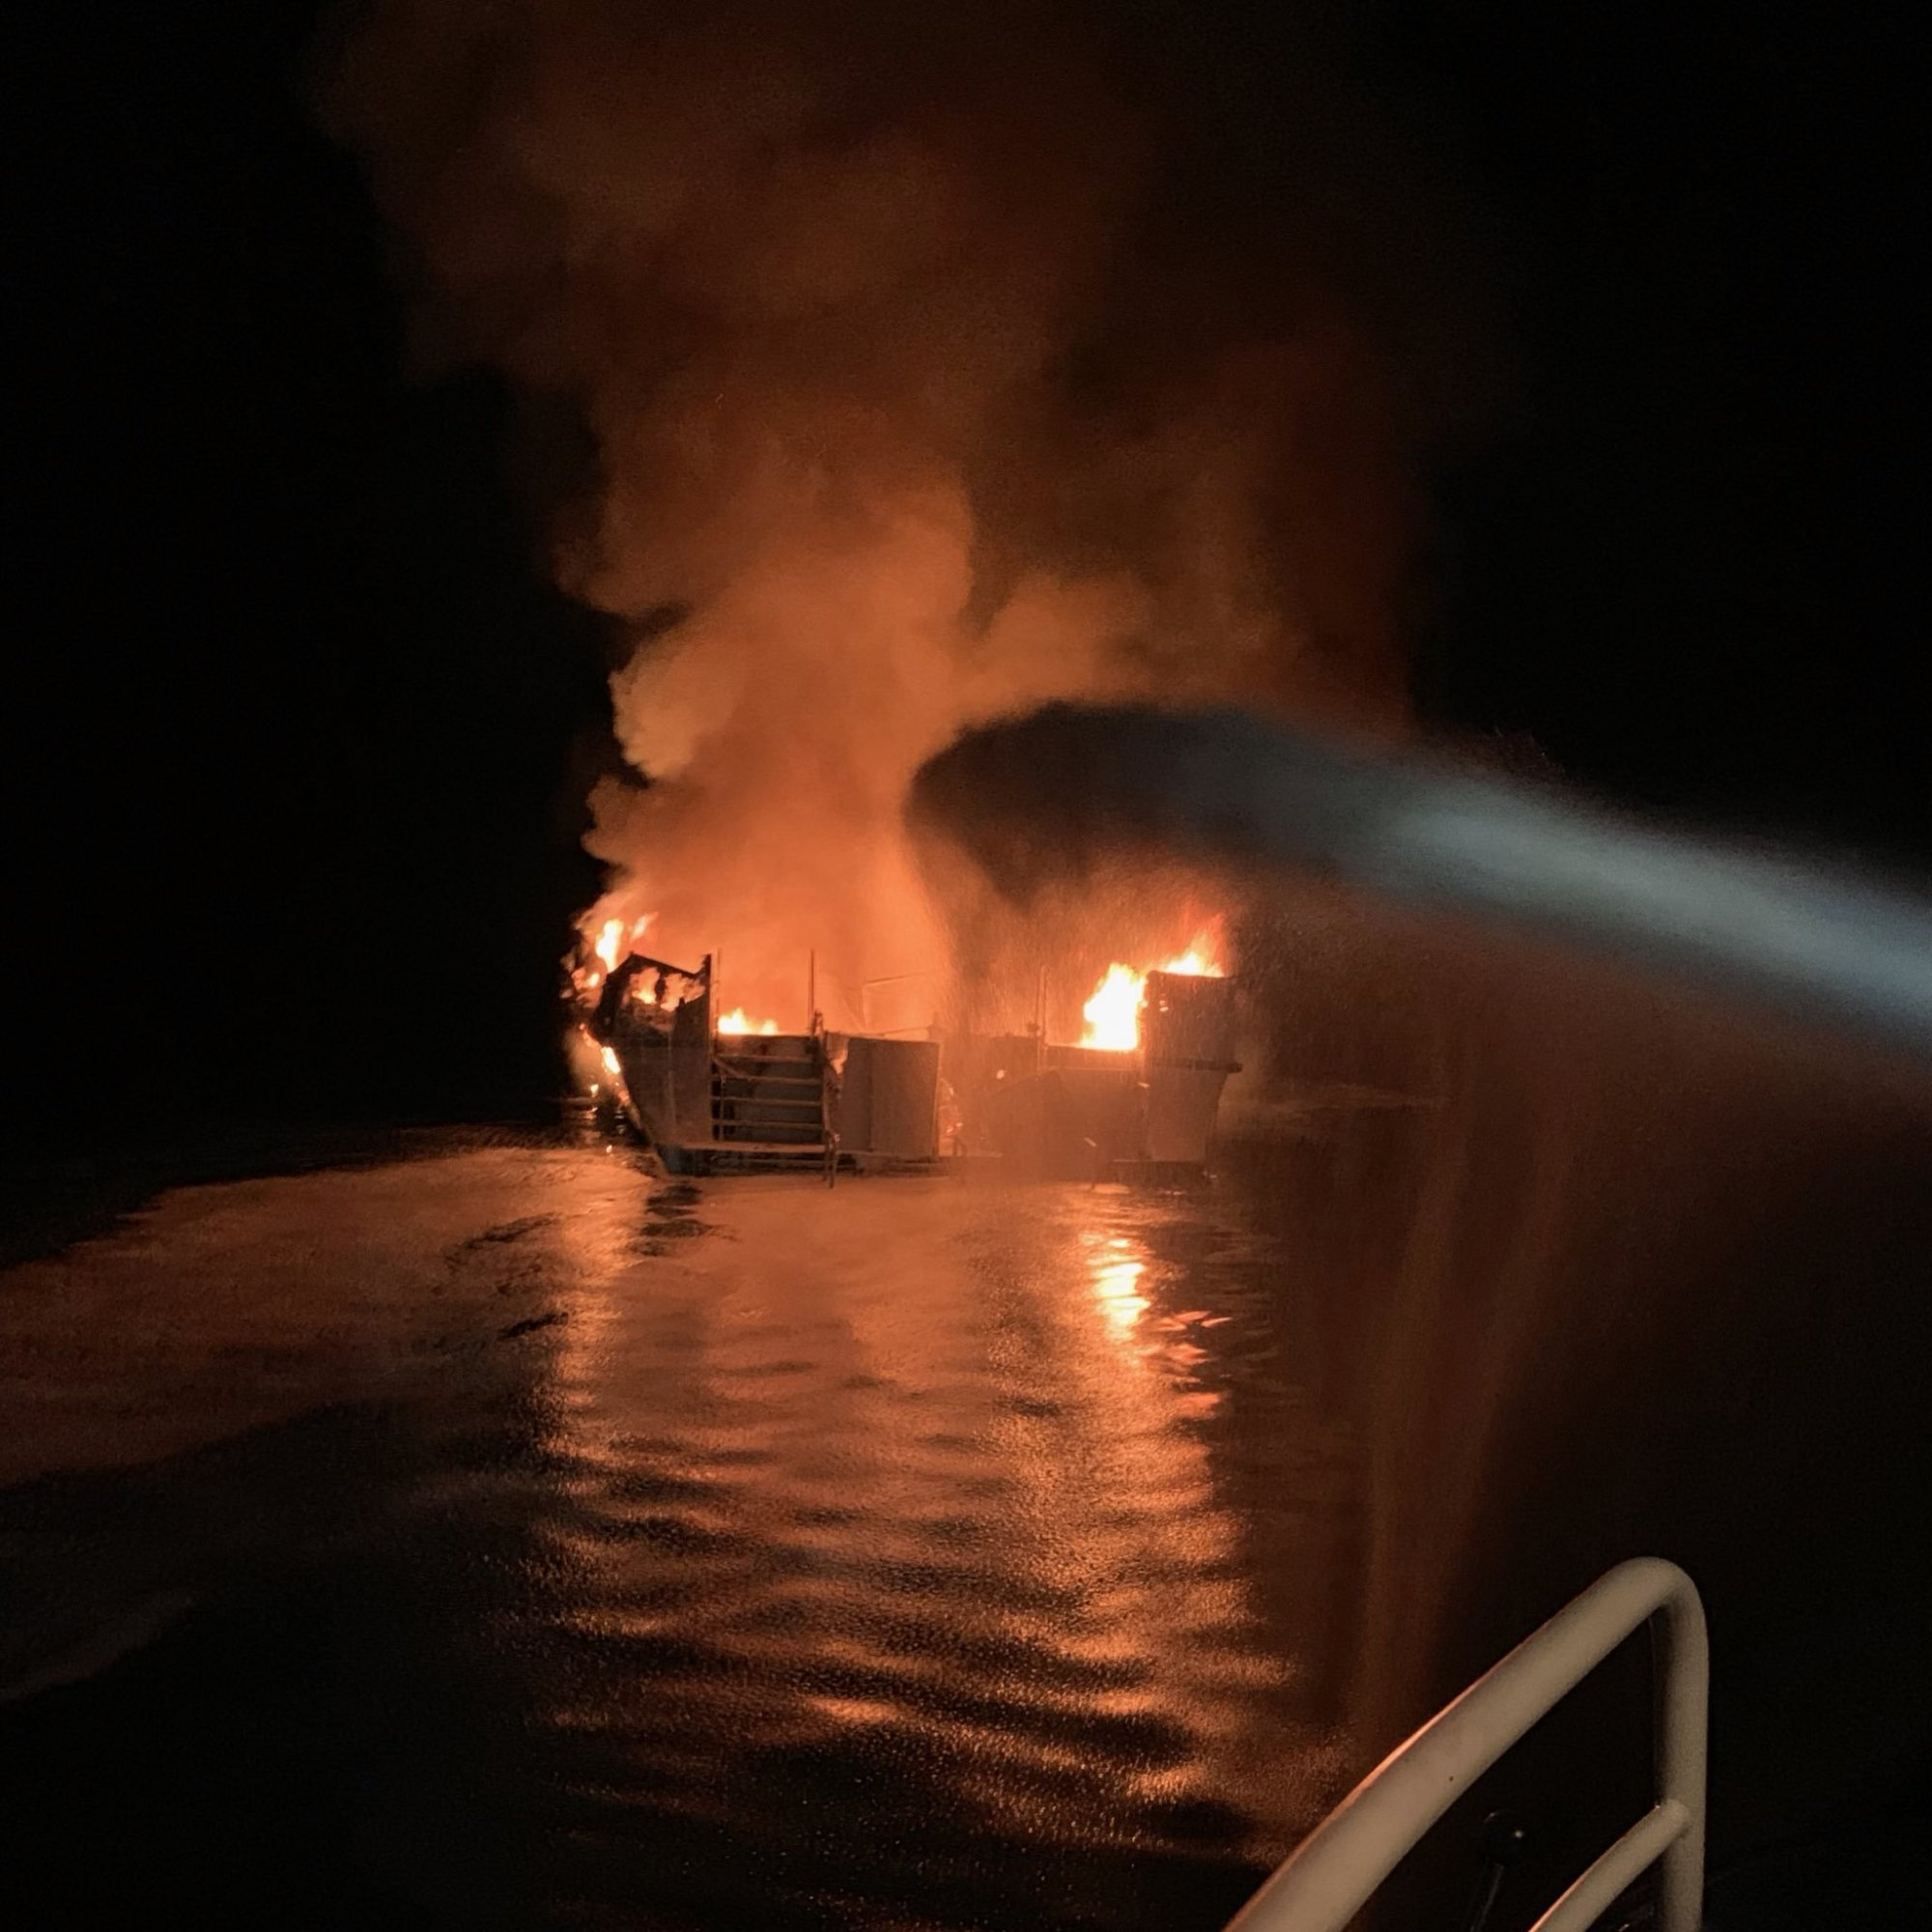 Ventura County Fire responded to boat fire off the north side of Santa Cruz Island at approximately 3:28am.